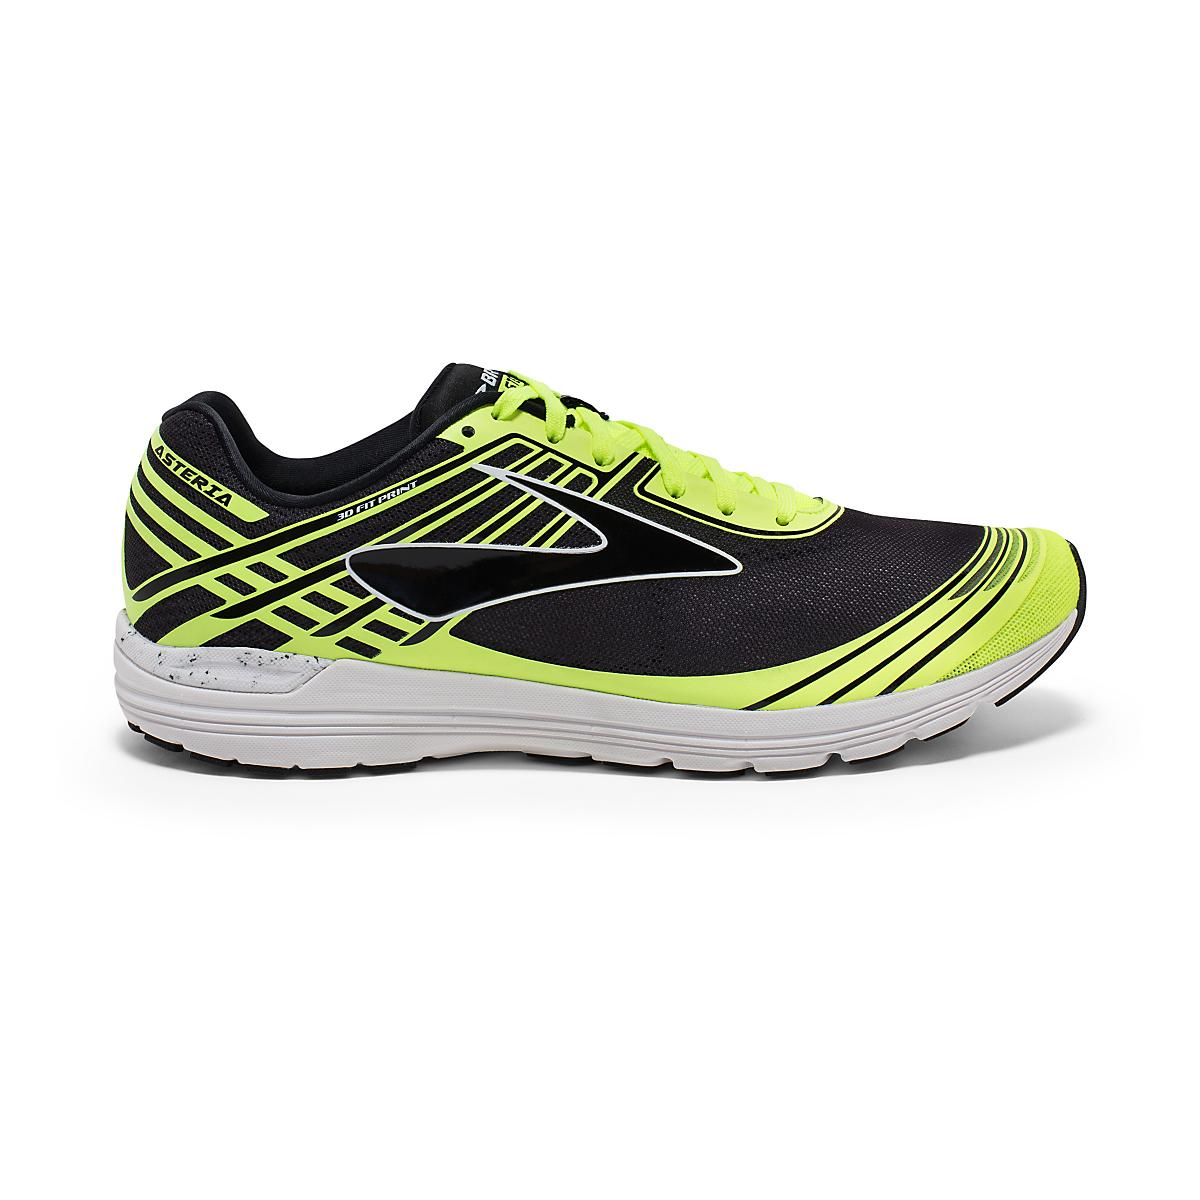 c96c8284f51 Mens Brooks Asteria Racing Shoe at Road Runner Sports